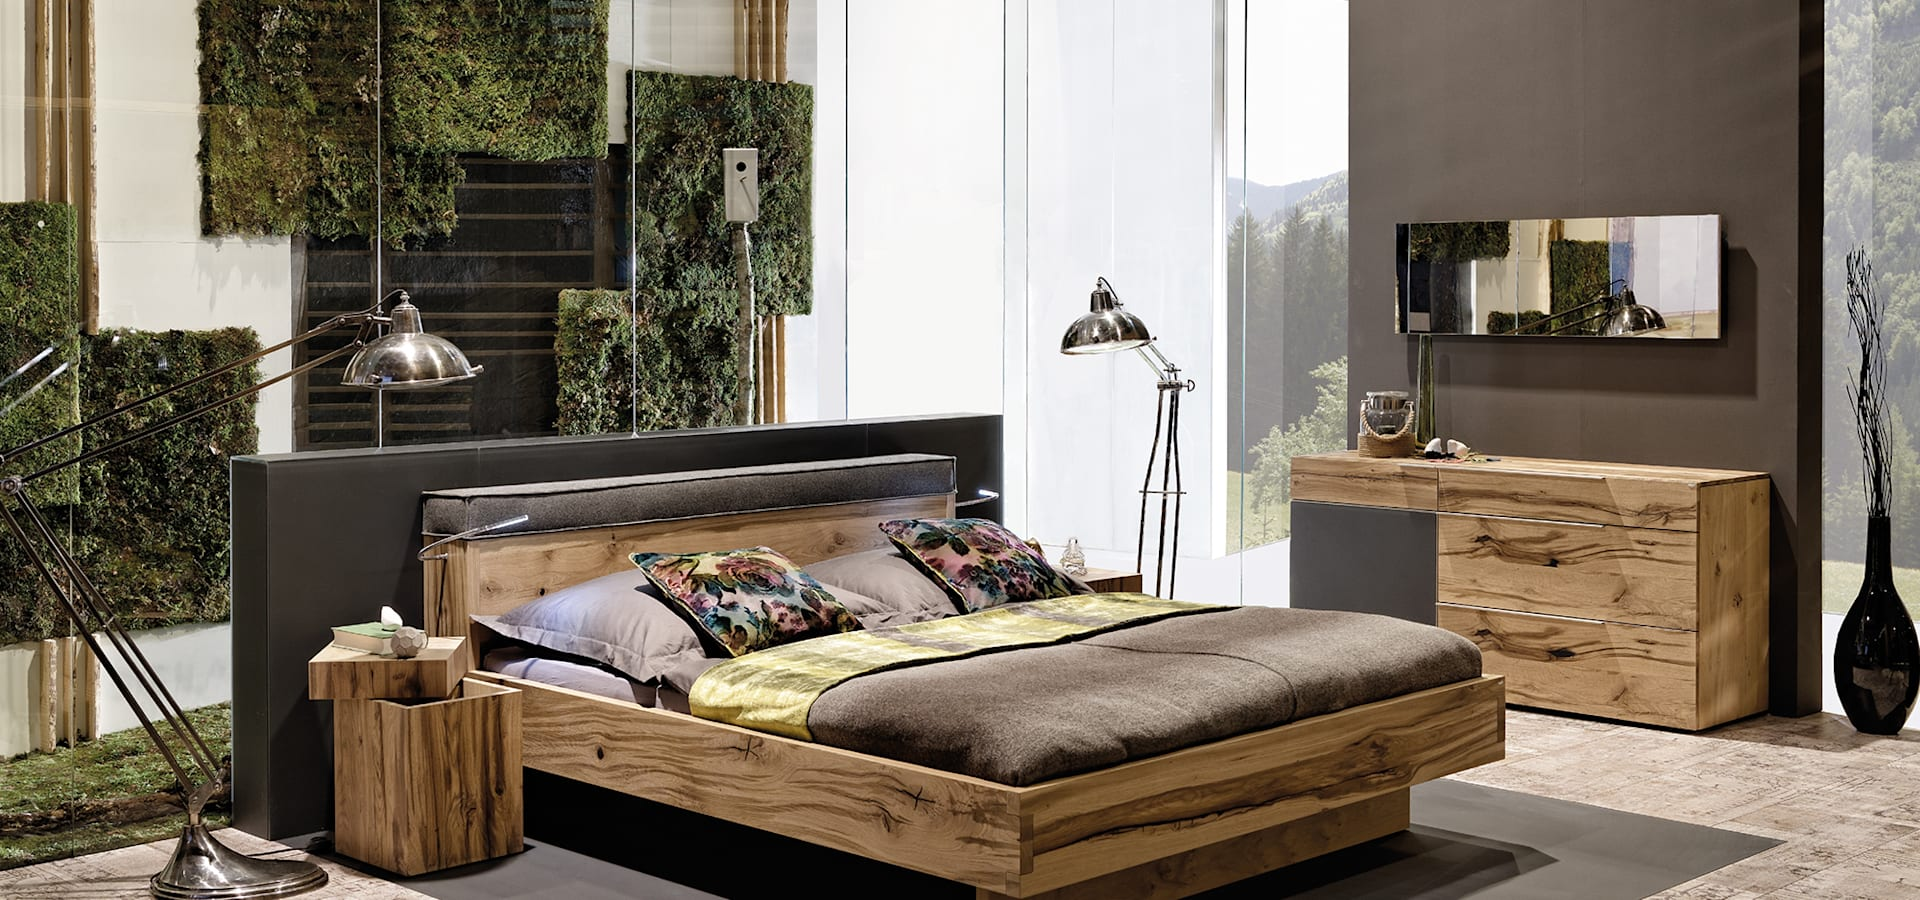 voglauer m bel voller leben di voglauer m belwerk. Black Bedroom Furniture Sets. Home Design Ideas